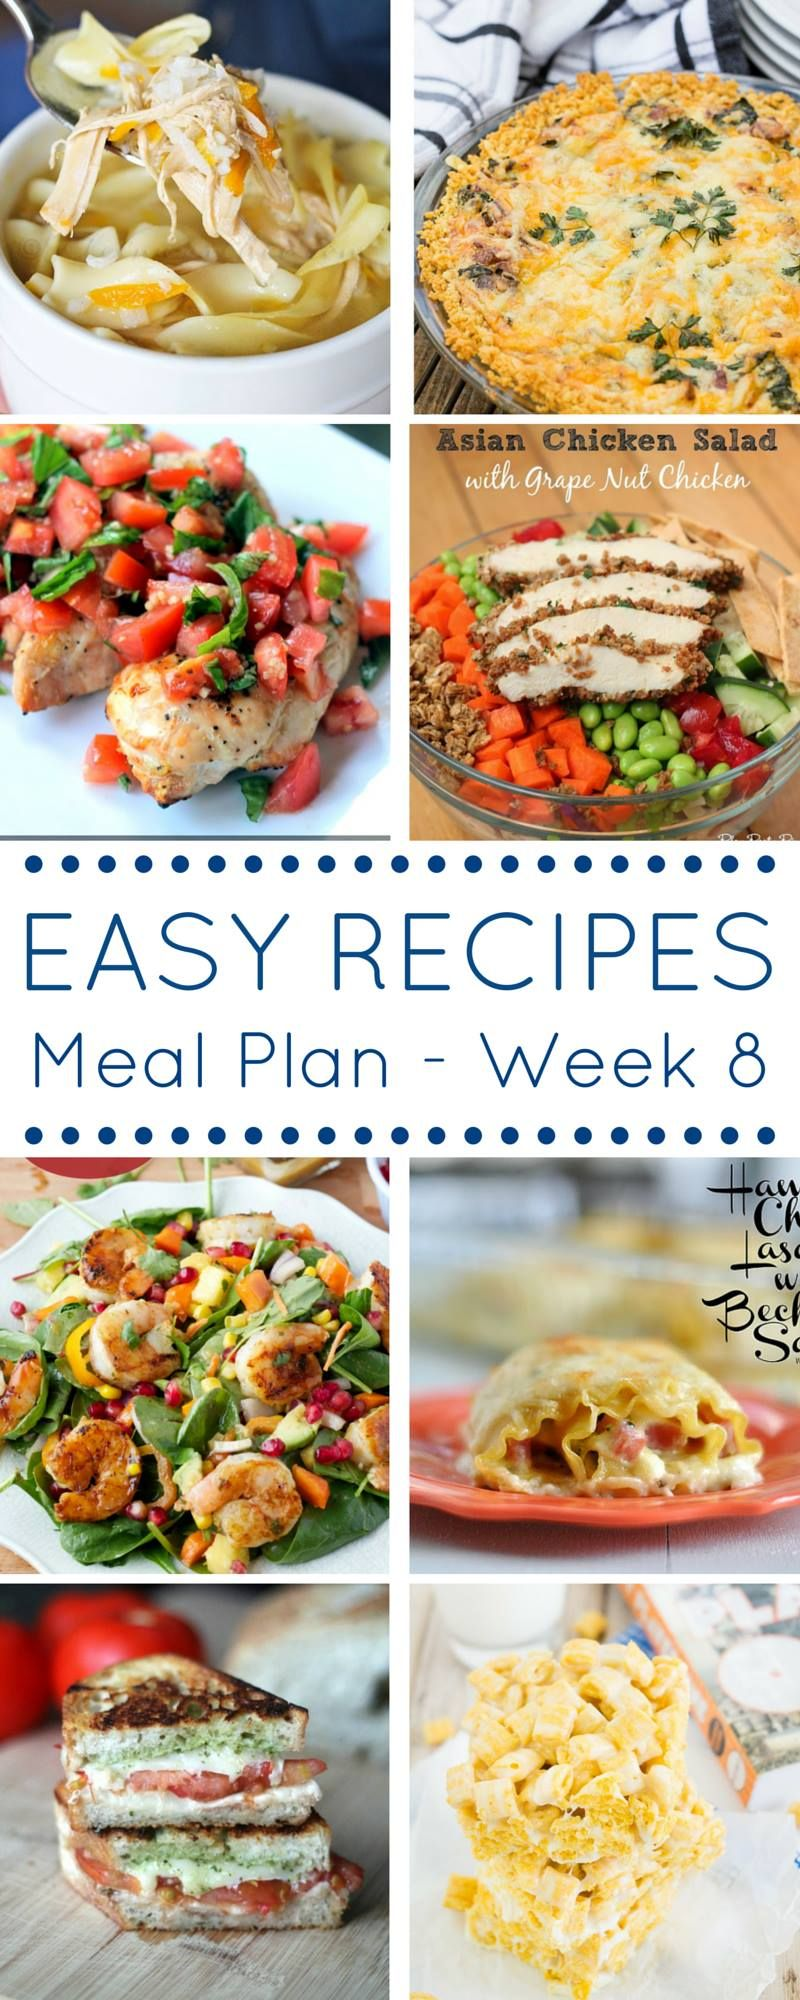 Make getting dinner on the table each night with our weekly easy dinner recipes meal plan. Week 8 is full of delicious options.